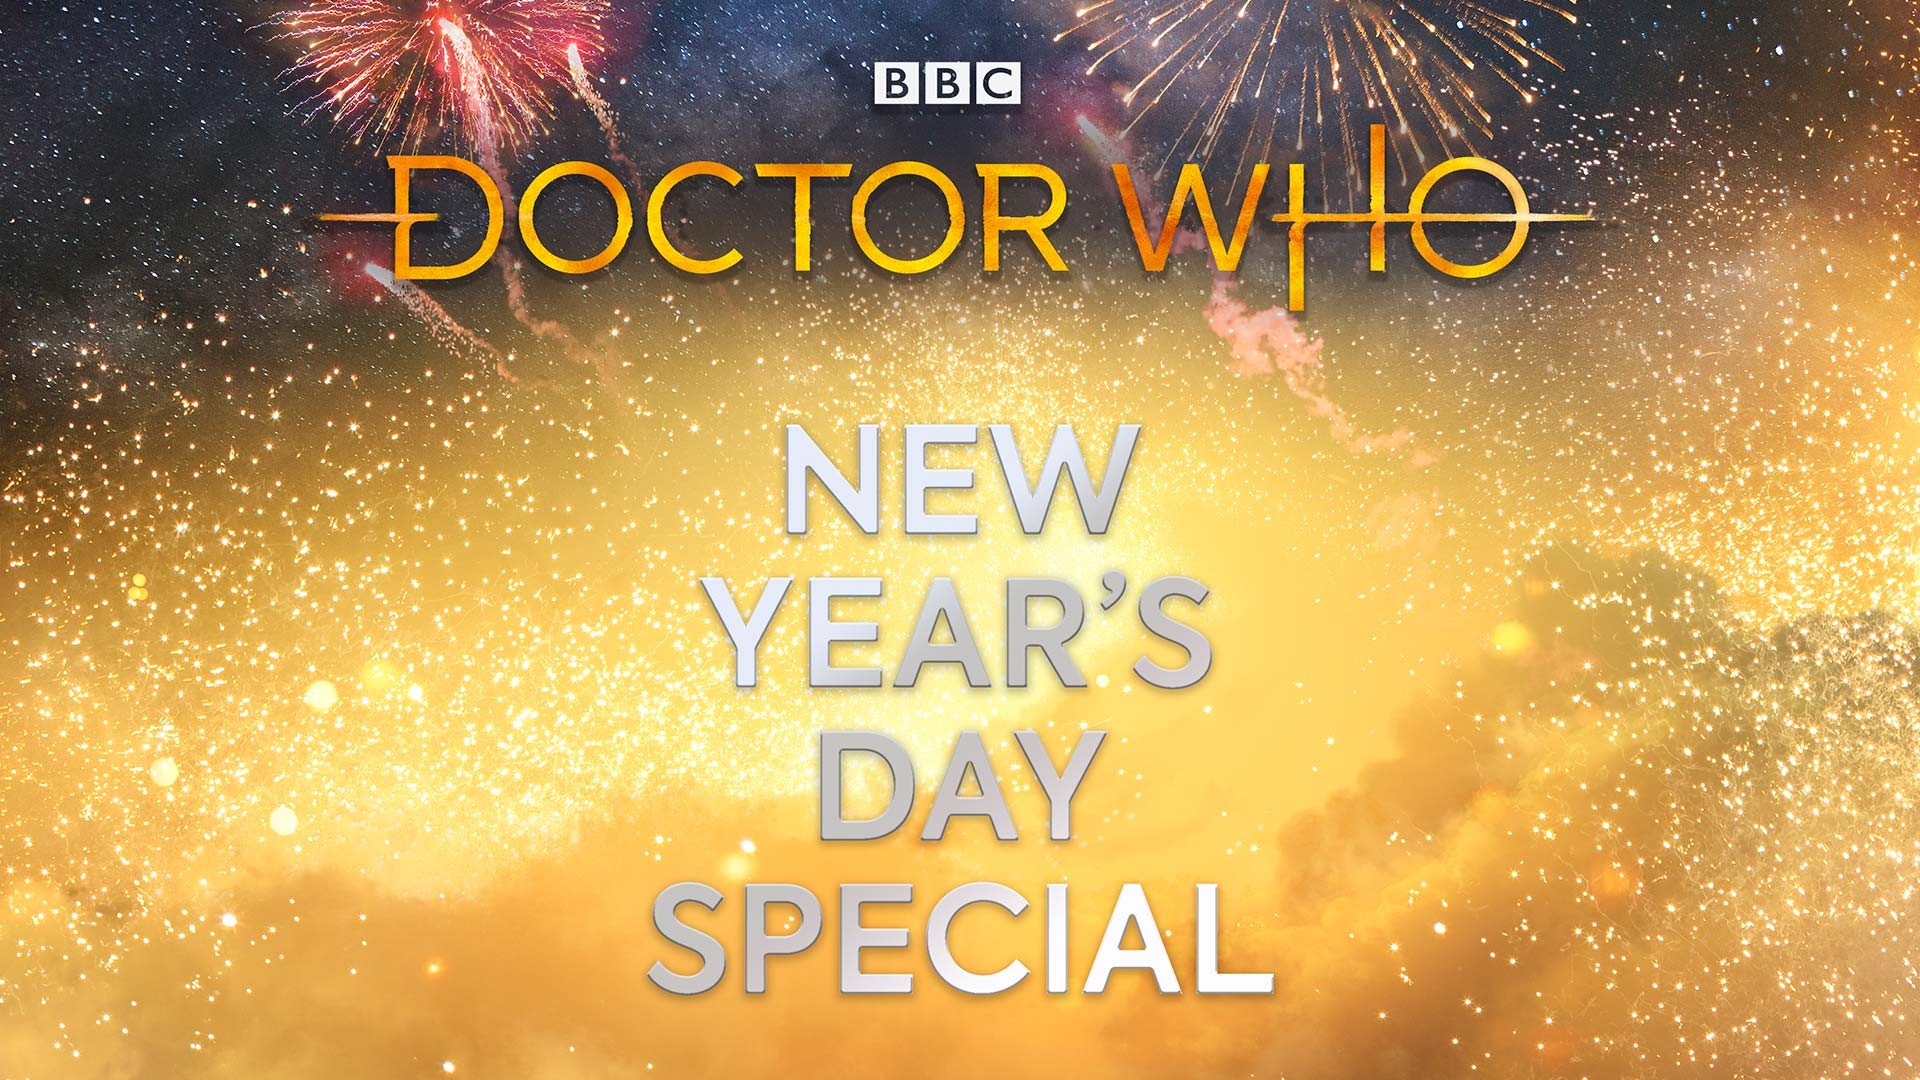 Christmas Special Dr Who 2019 An All New 'Doctor Who' New Year's Day Special Will Ring in 2019